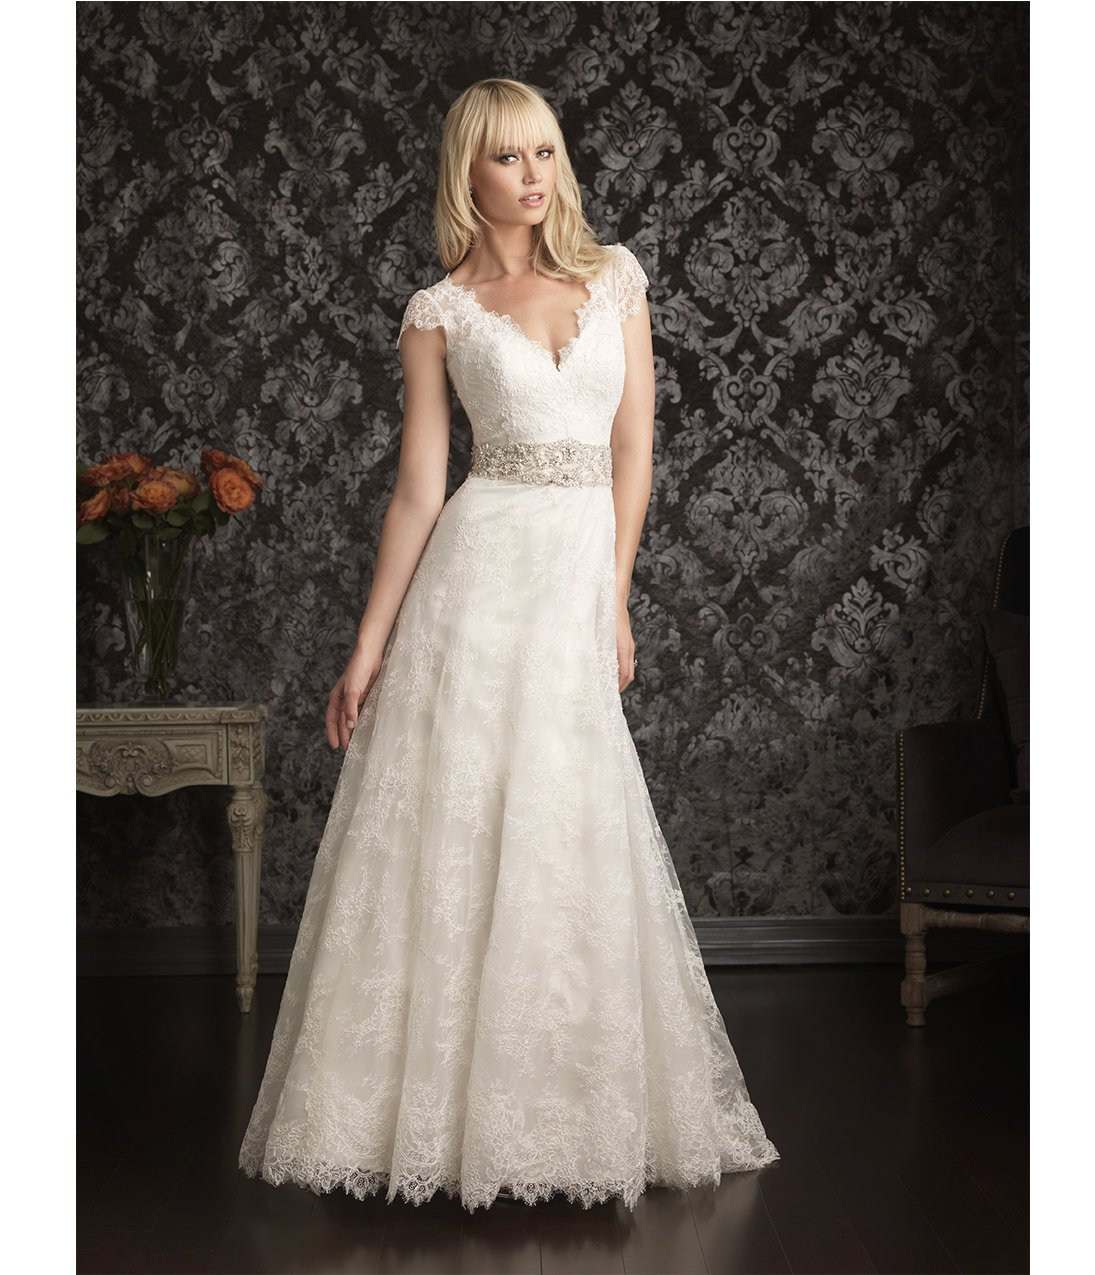 2013 Allure Bridal Ivory Silver Lace From Unique Vintage